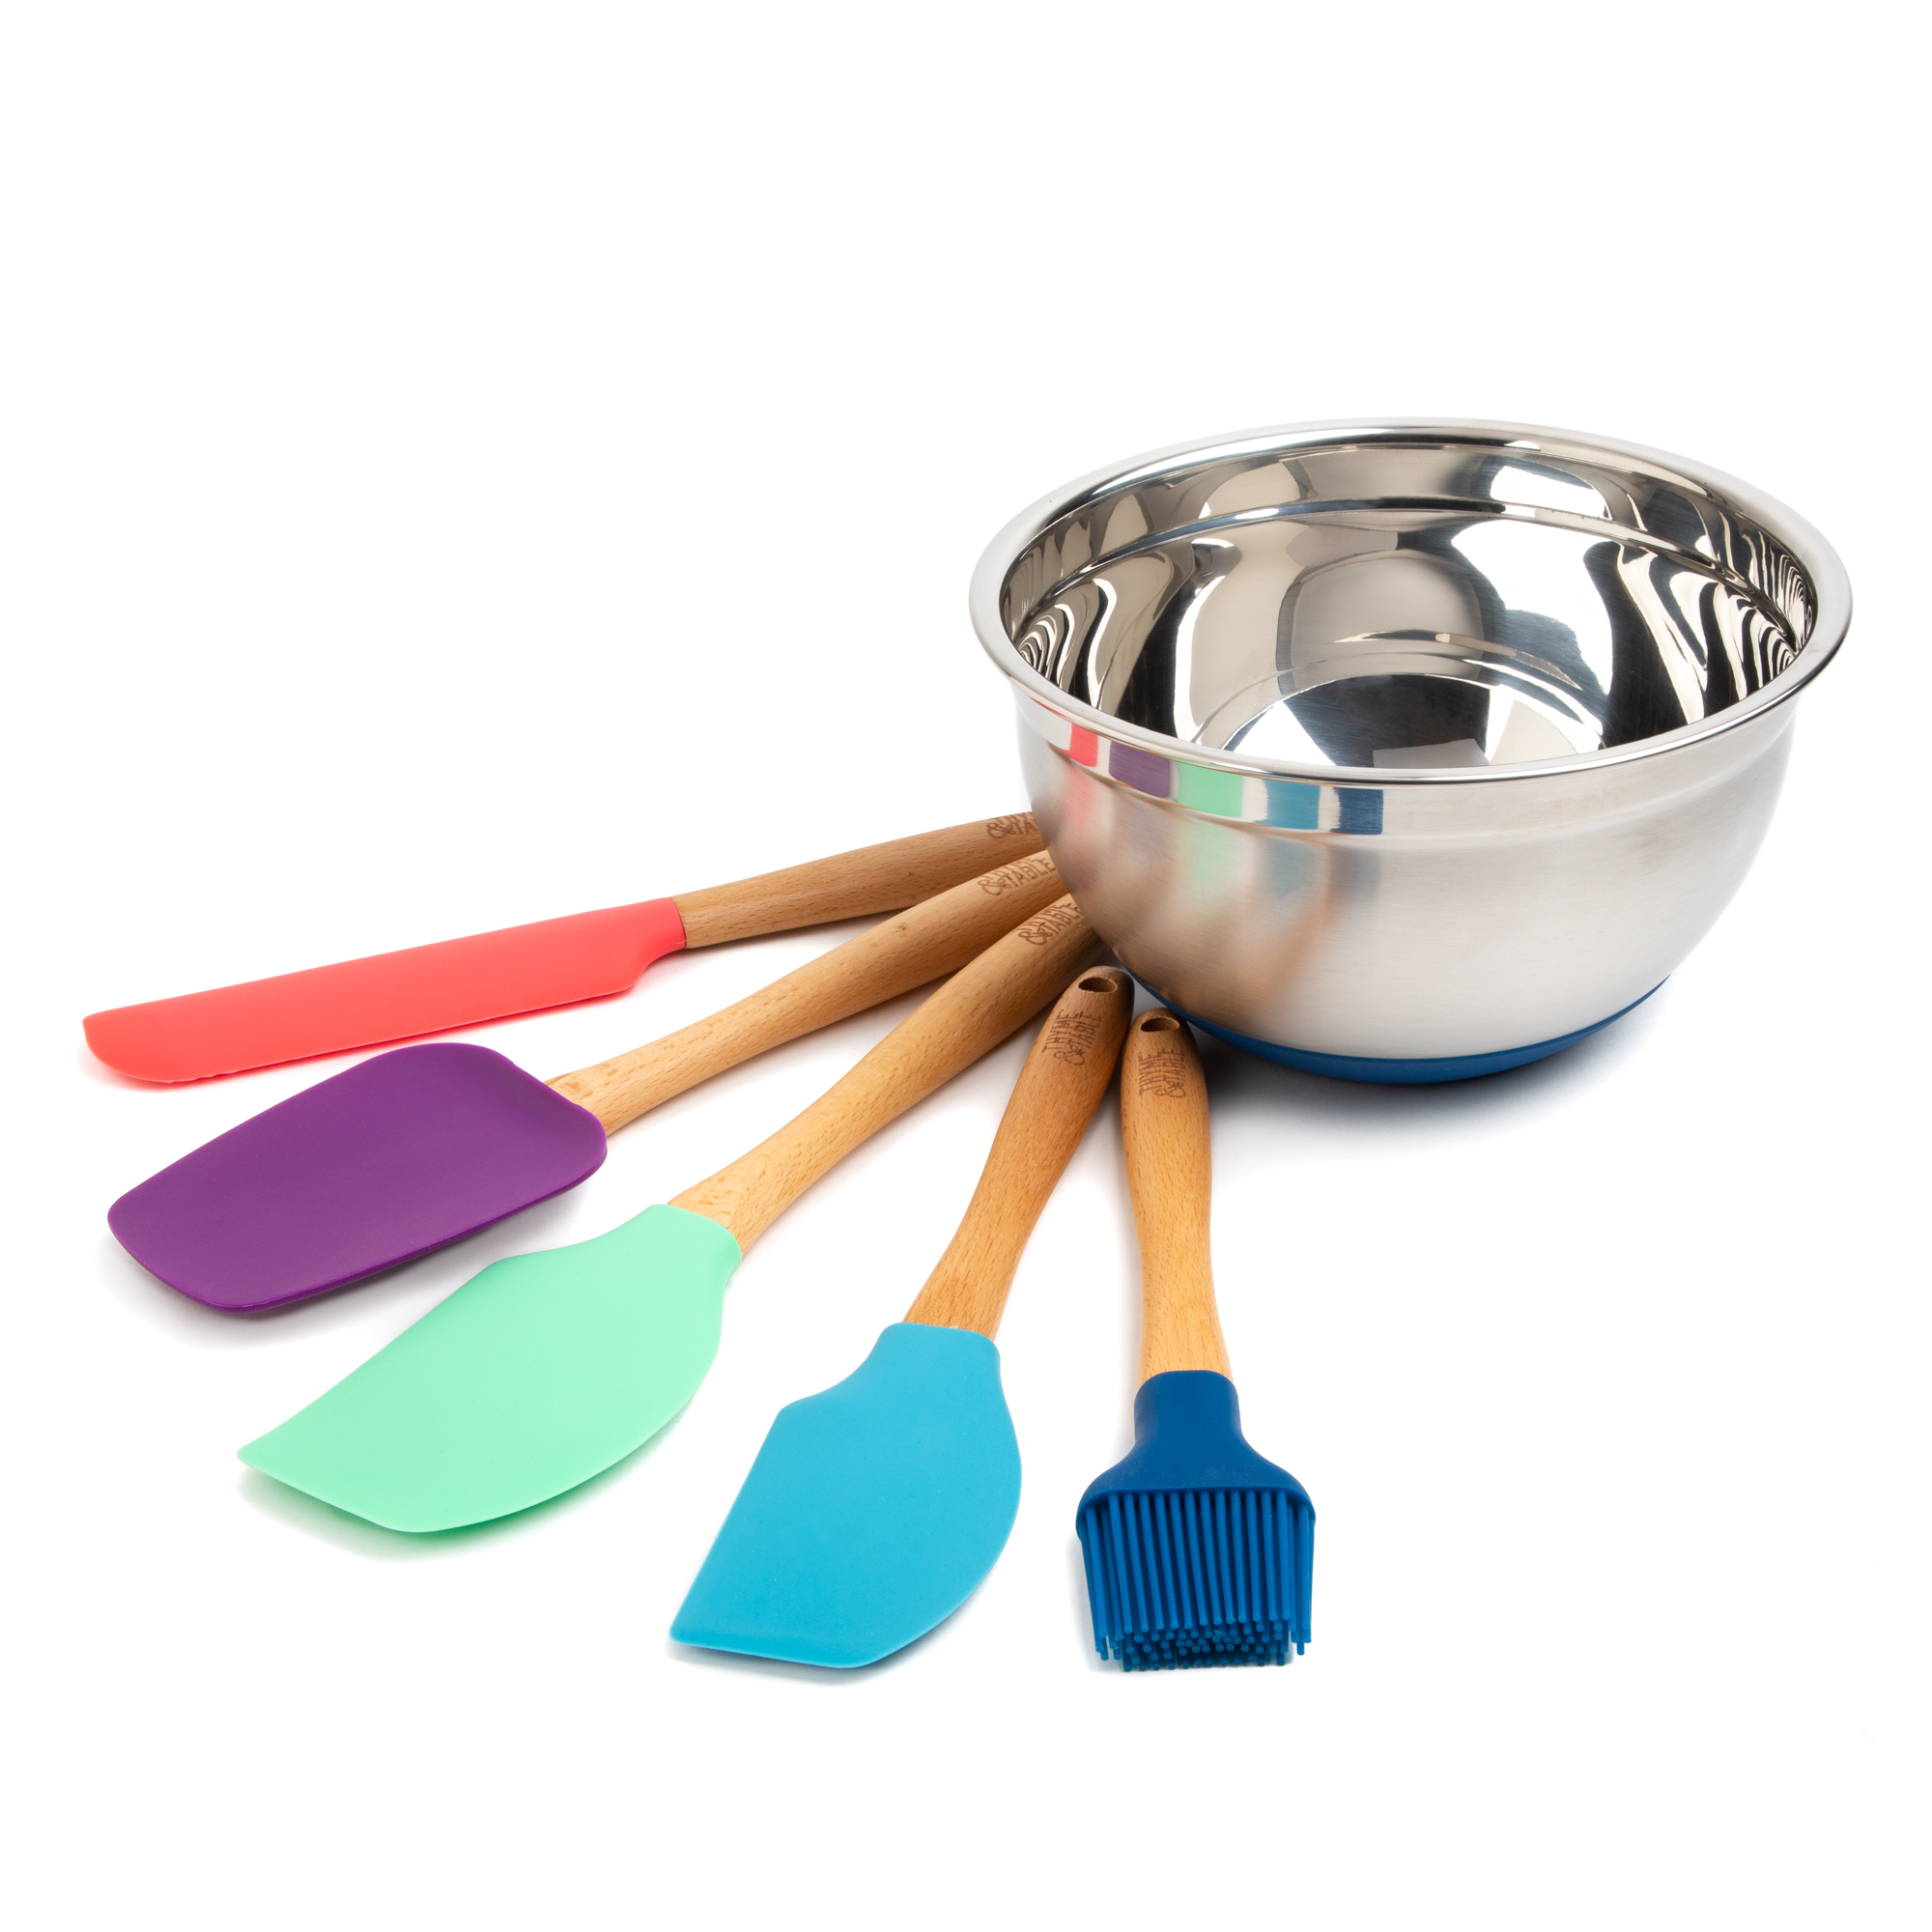 Thyme and Table 6-Piece Kitchen Utensil and Mixing Bowl Set Only $10.68